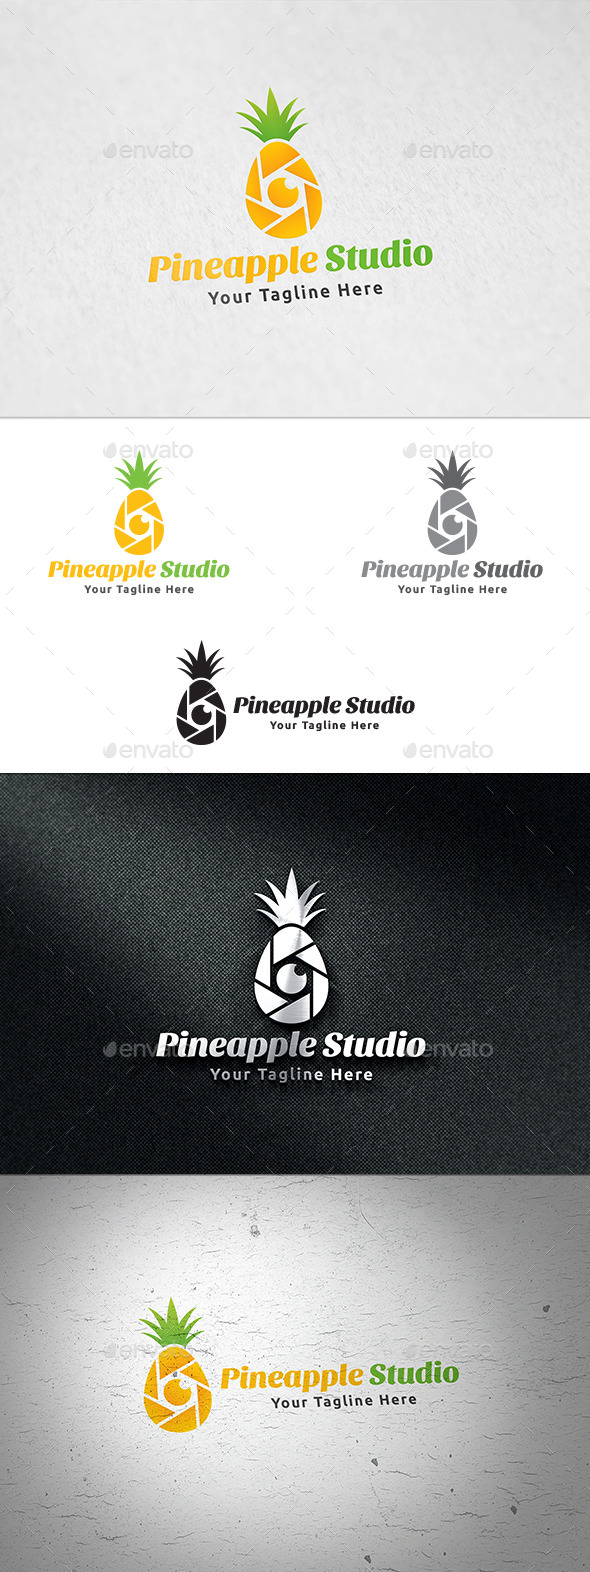 GraphicRiver Pineapple Studio Logo Template 11925467